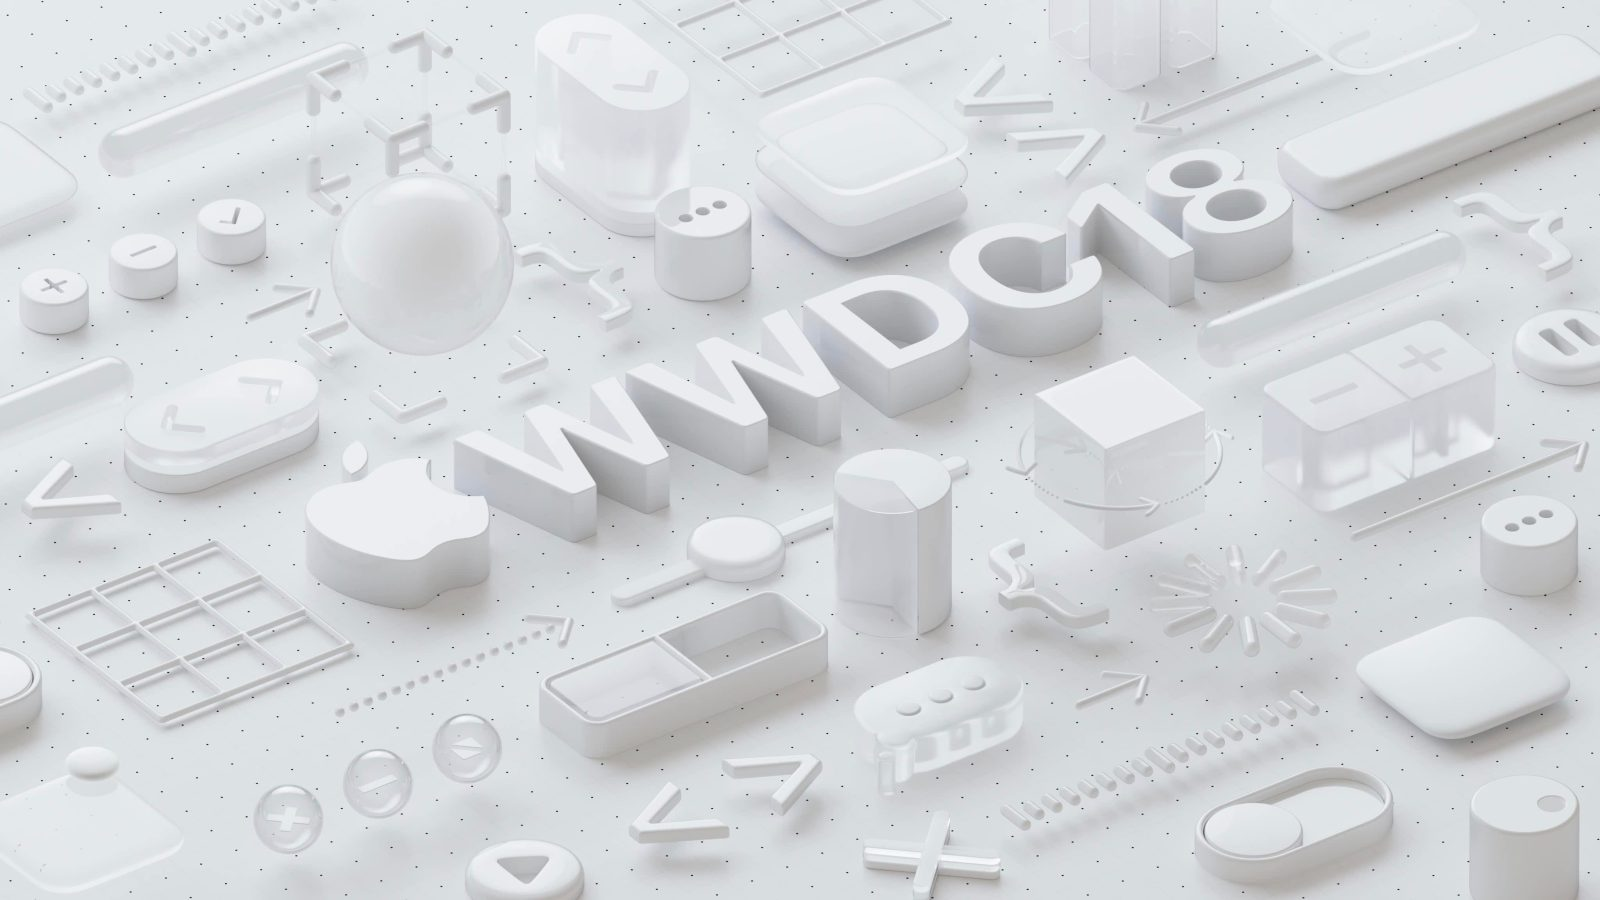 How to watch Apple's WWDC 2018 keynote on June 4th - 9to5Mac